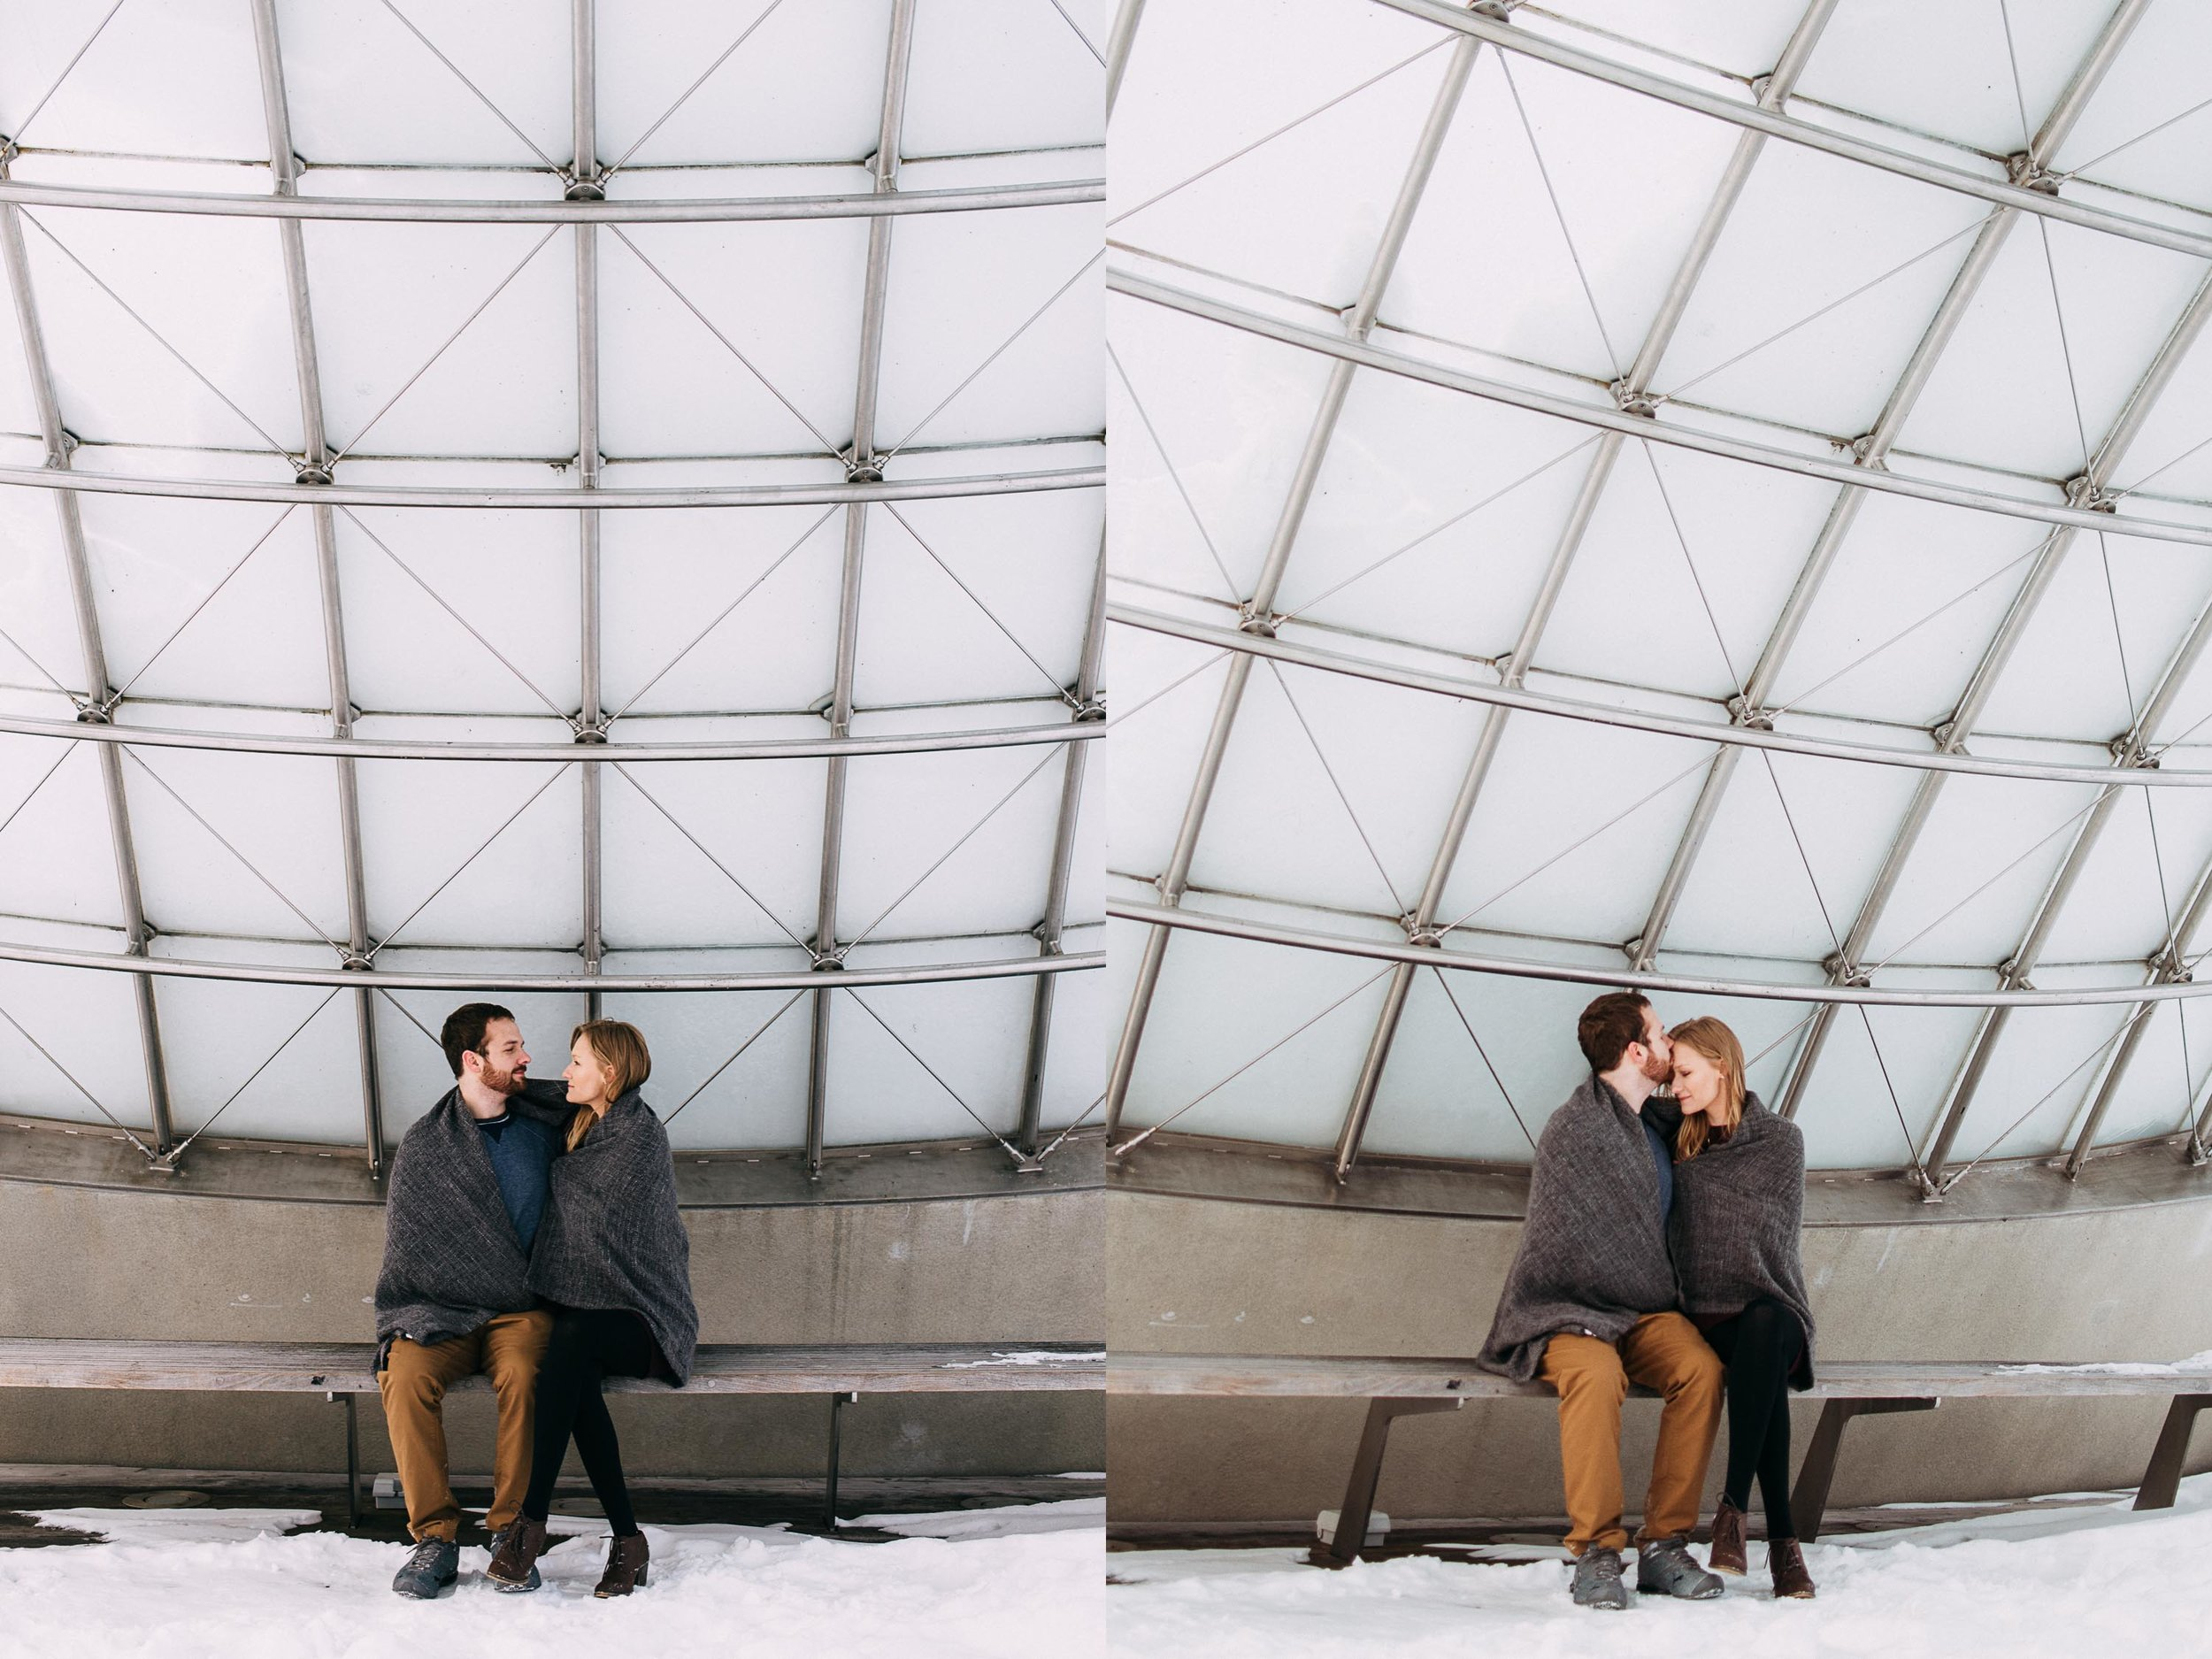 Cody_Mary_Saint_Paul_Winter_Engagement-5.jpg